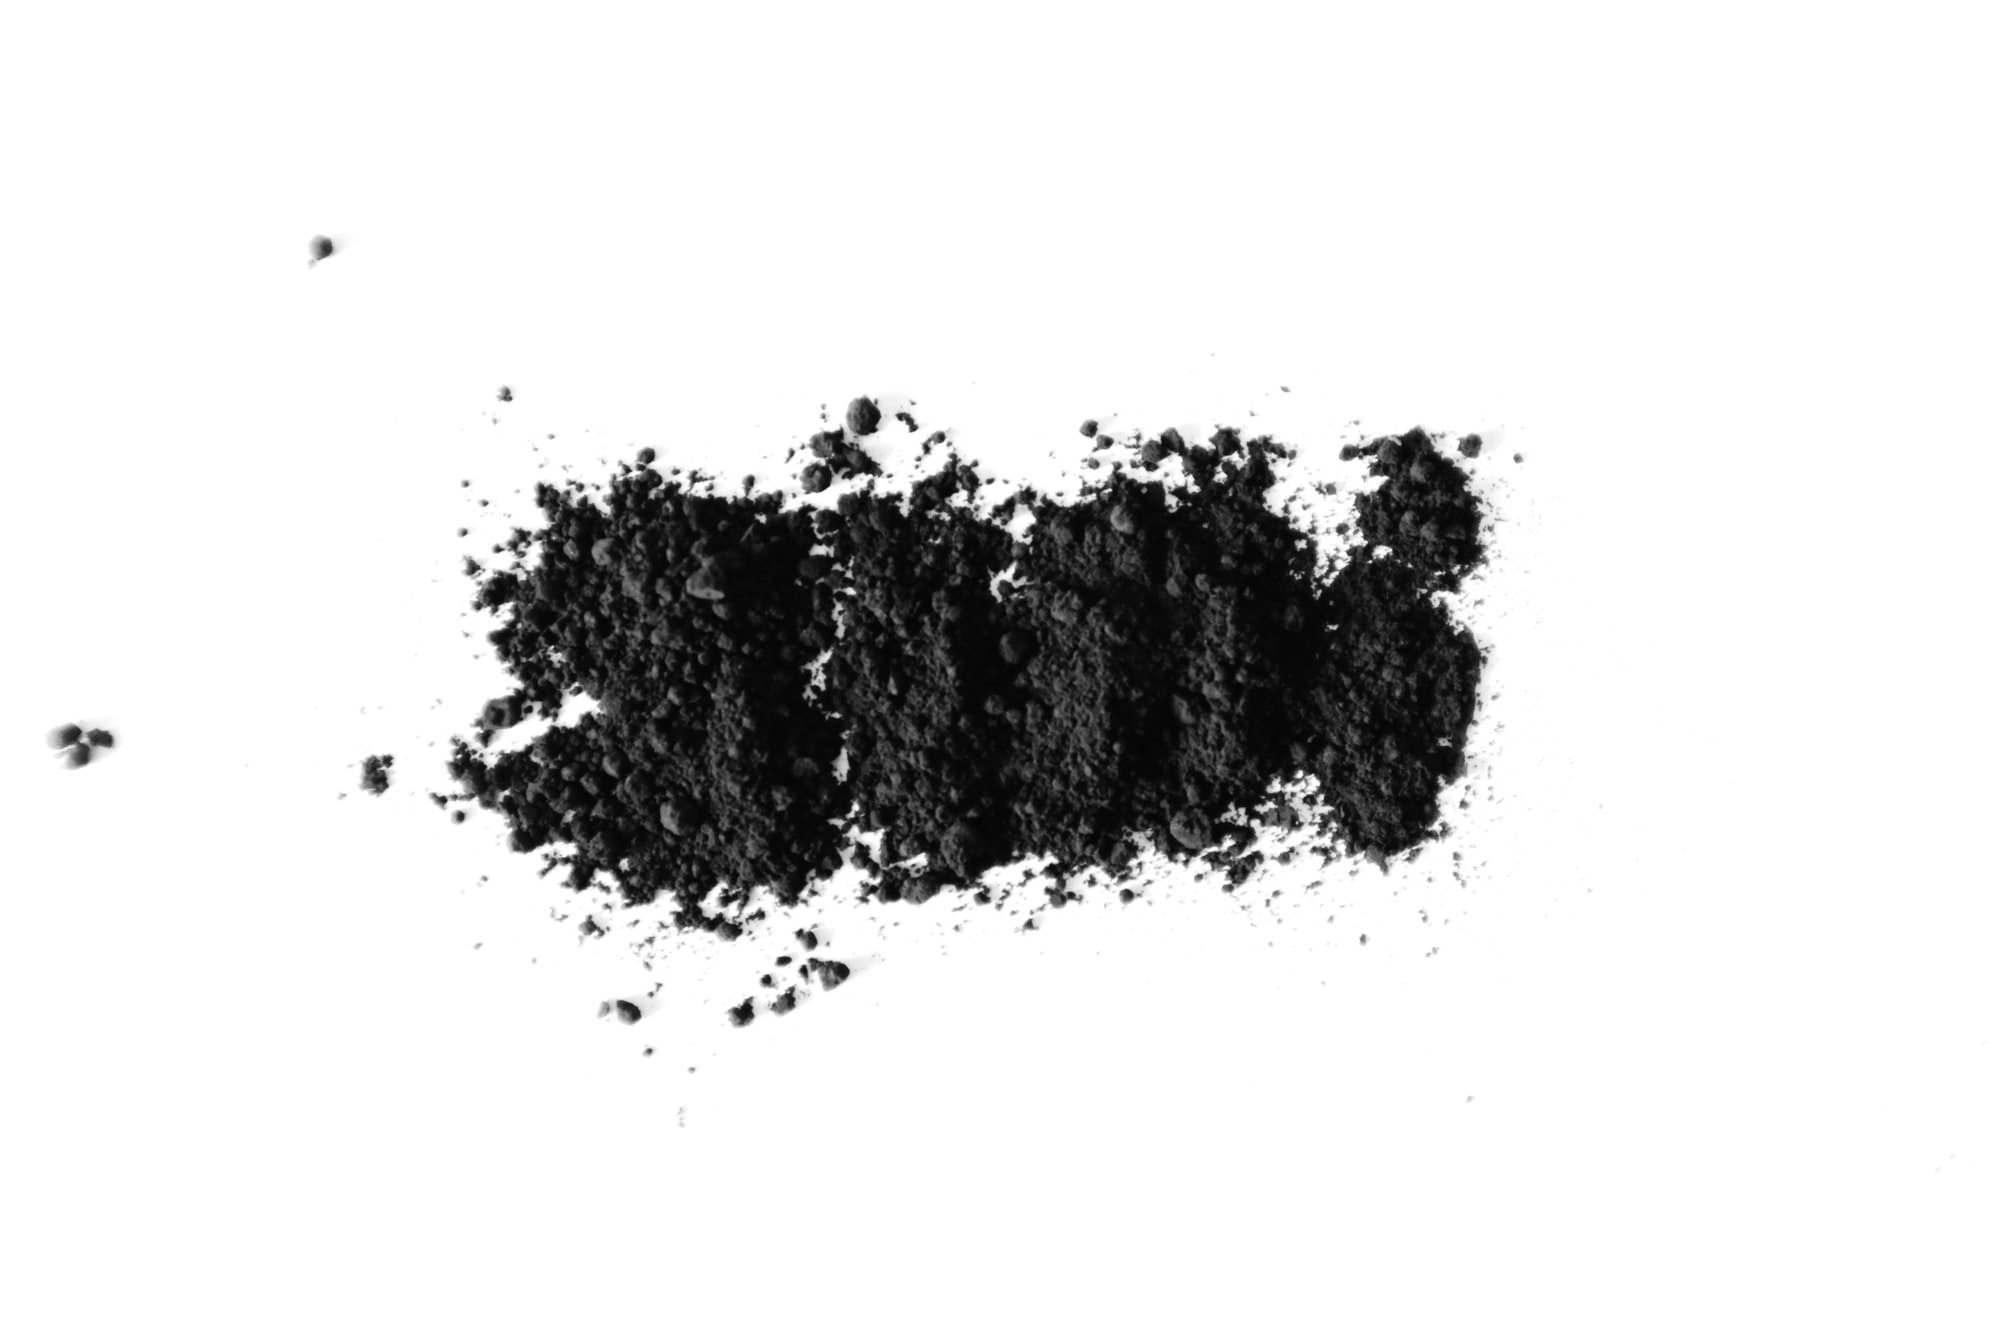 Activated charcoal trend by Adrien Olichon